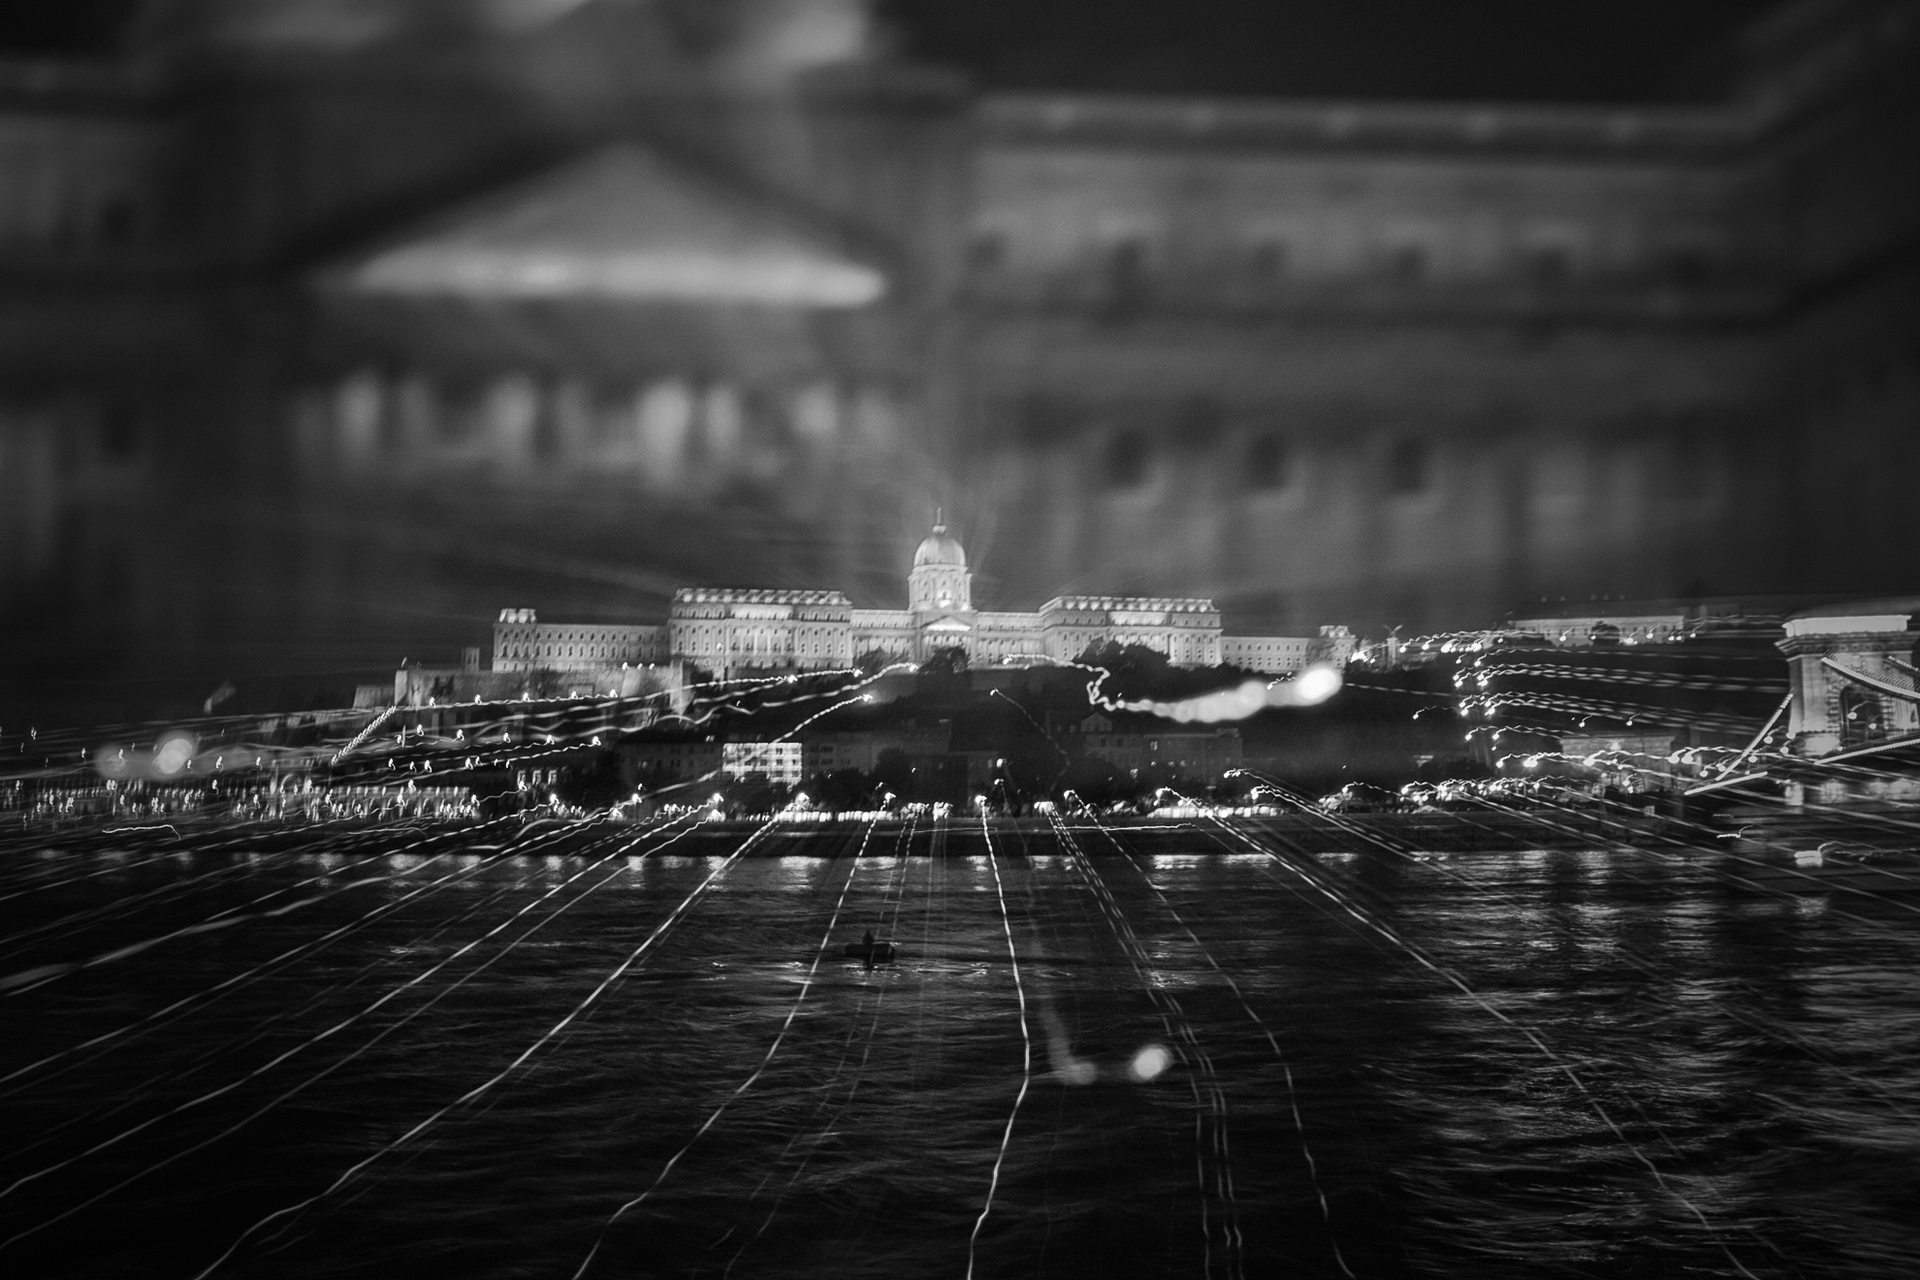 Buda Castle on Danube, by Larry Hands. All rights reserved.